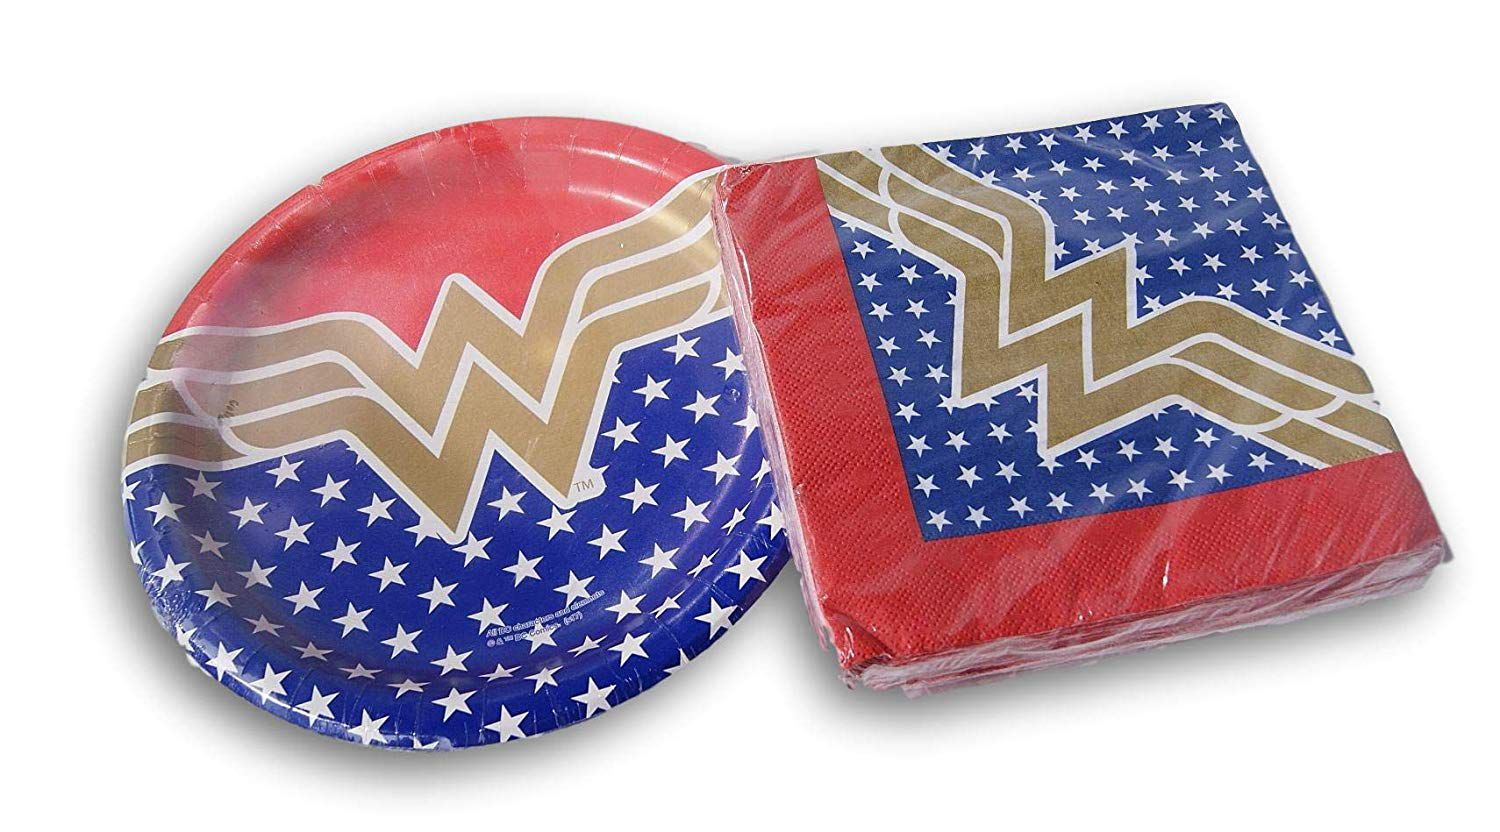 Wonder Woman plates and napkins